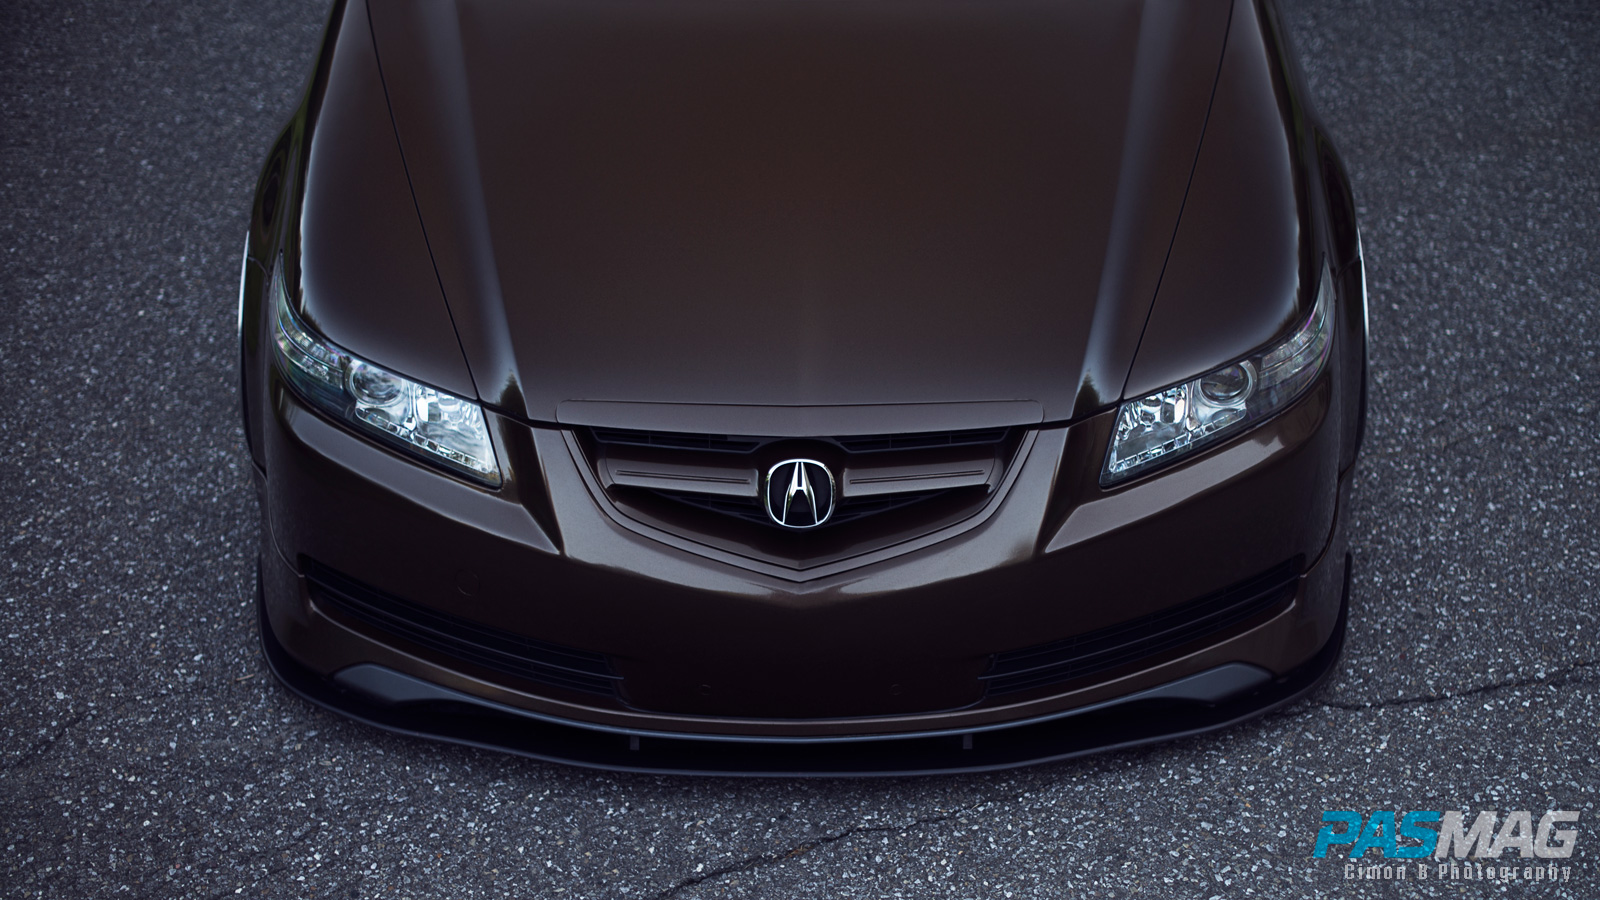 PASMAG PERFORMANCE AUTO AND SOUND Luxuriously Low Alexandre - 2004 acura tl front lip